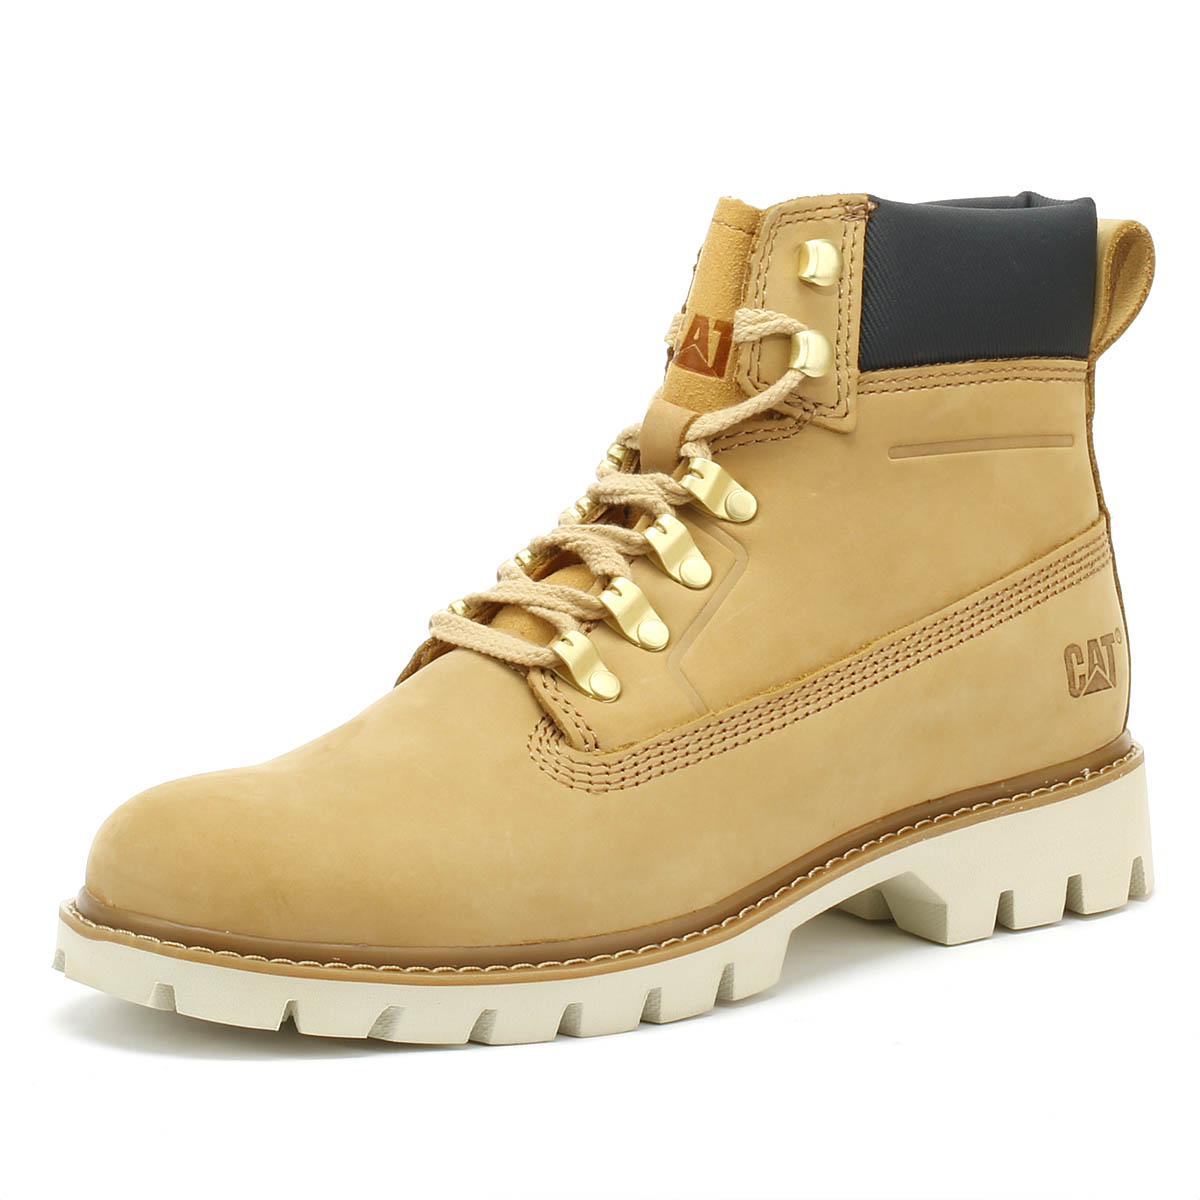 be8275aeef7 Details about Caterpillar Lexicon Mens Boots Honey Reset Yellow Nubuck  Leather Winter Shoes